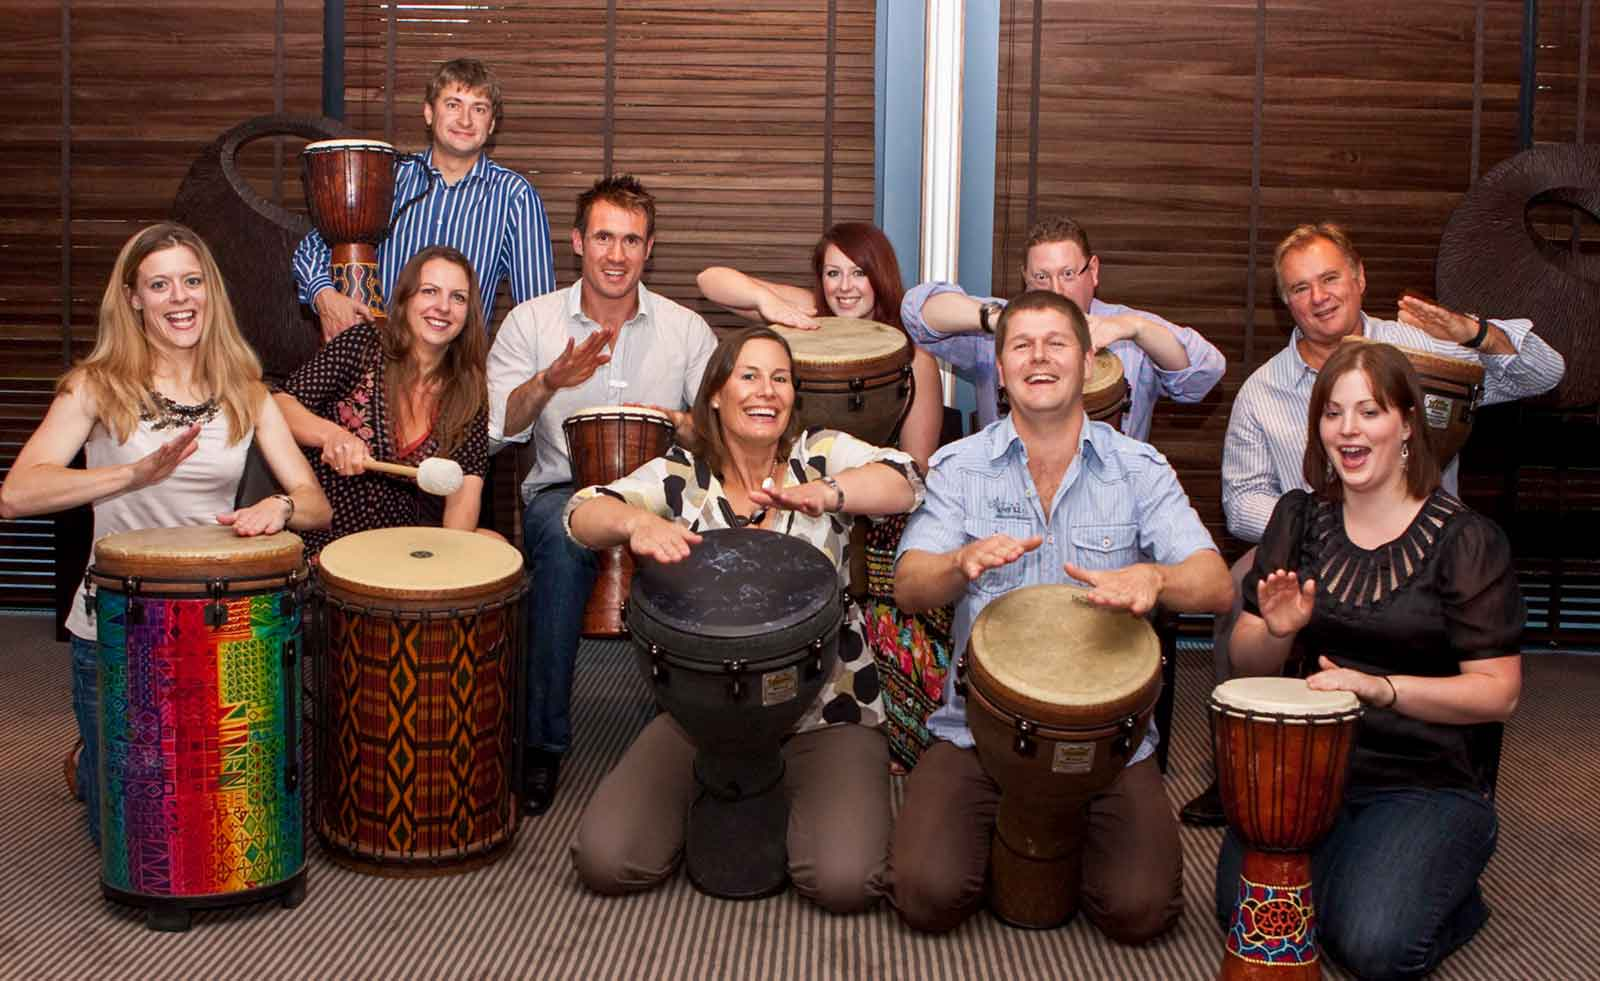 Home page showing drumming